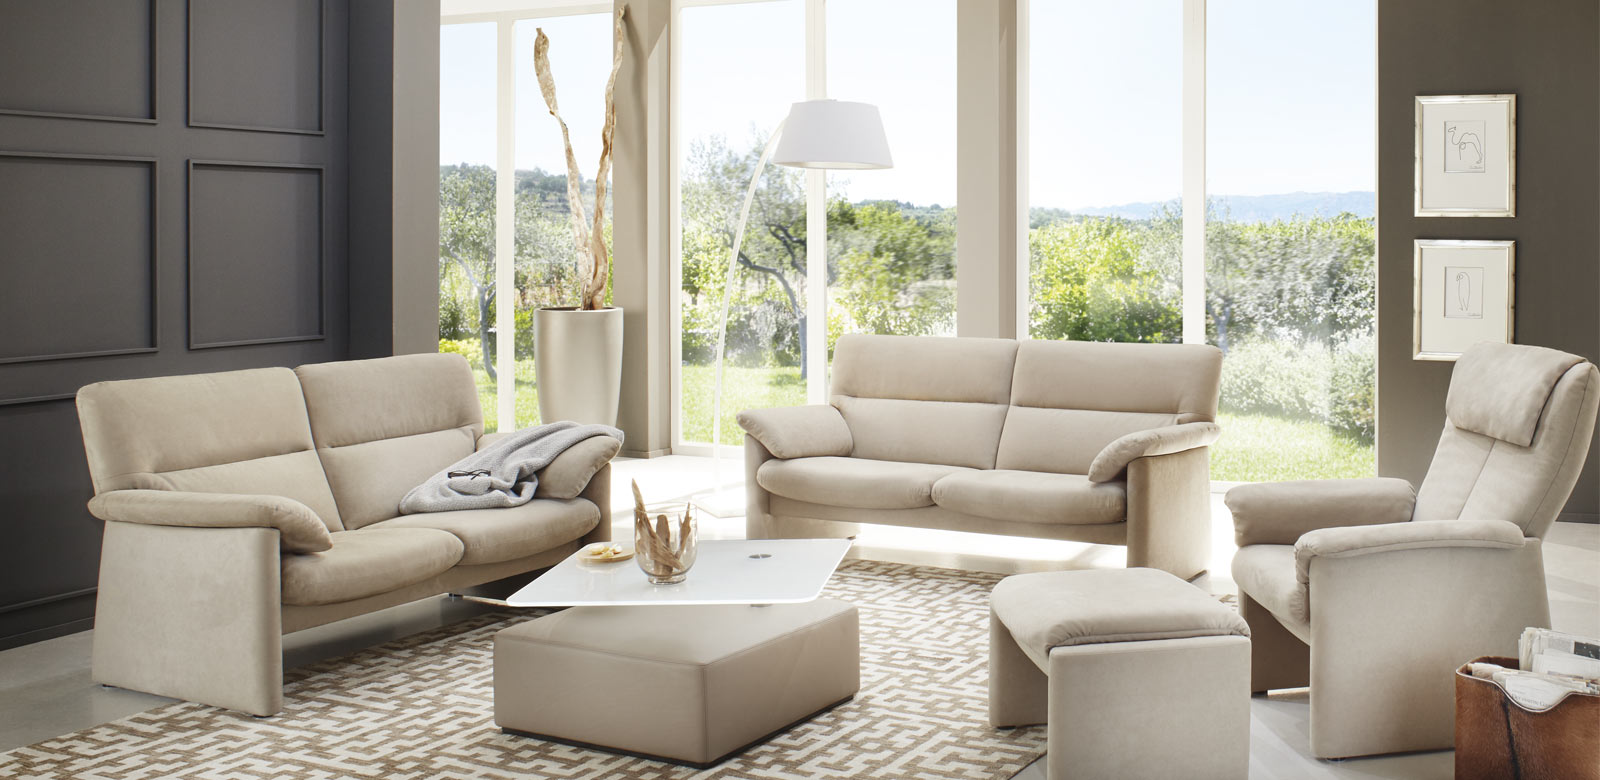 Ecksofa Design Erpo Ecksofa Colorado Hochwertiges Design Sofa